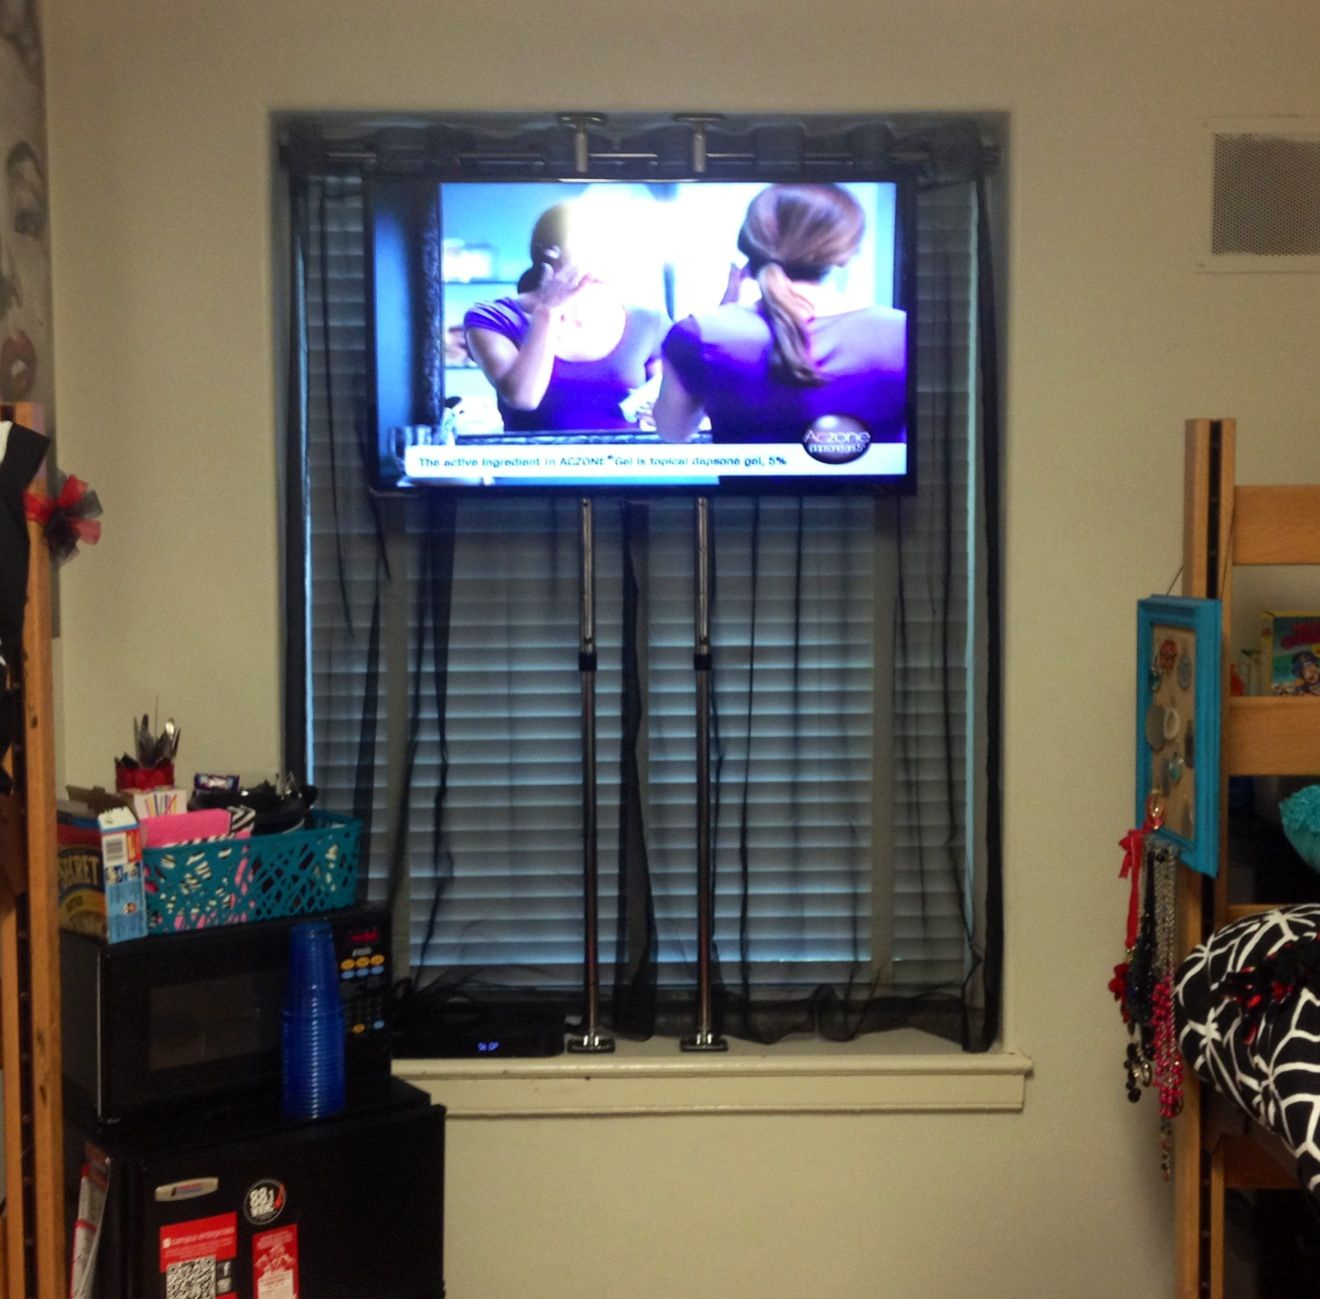 40 flat panel in university dorm room how do you hang a